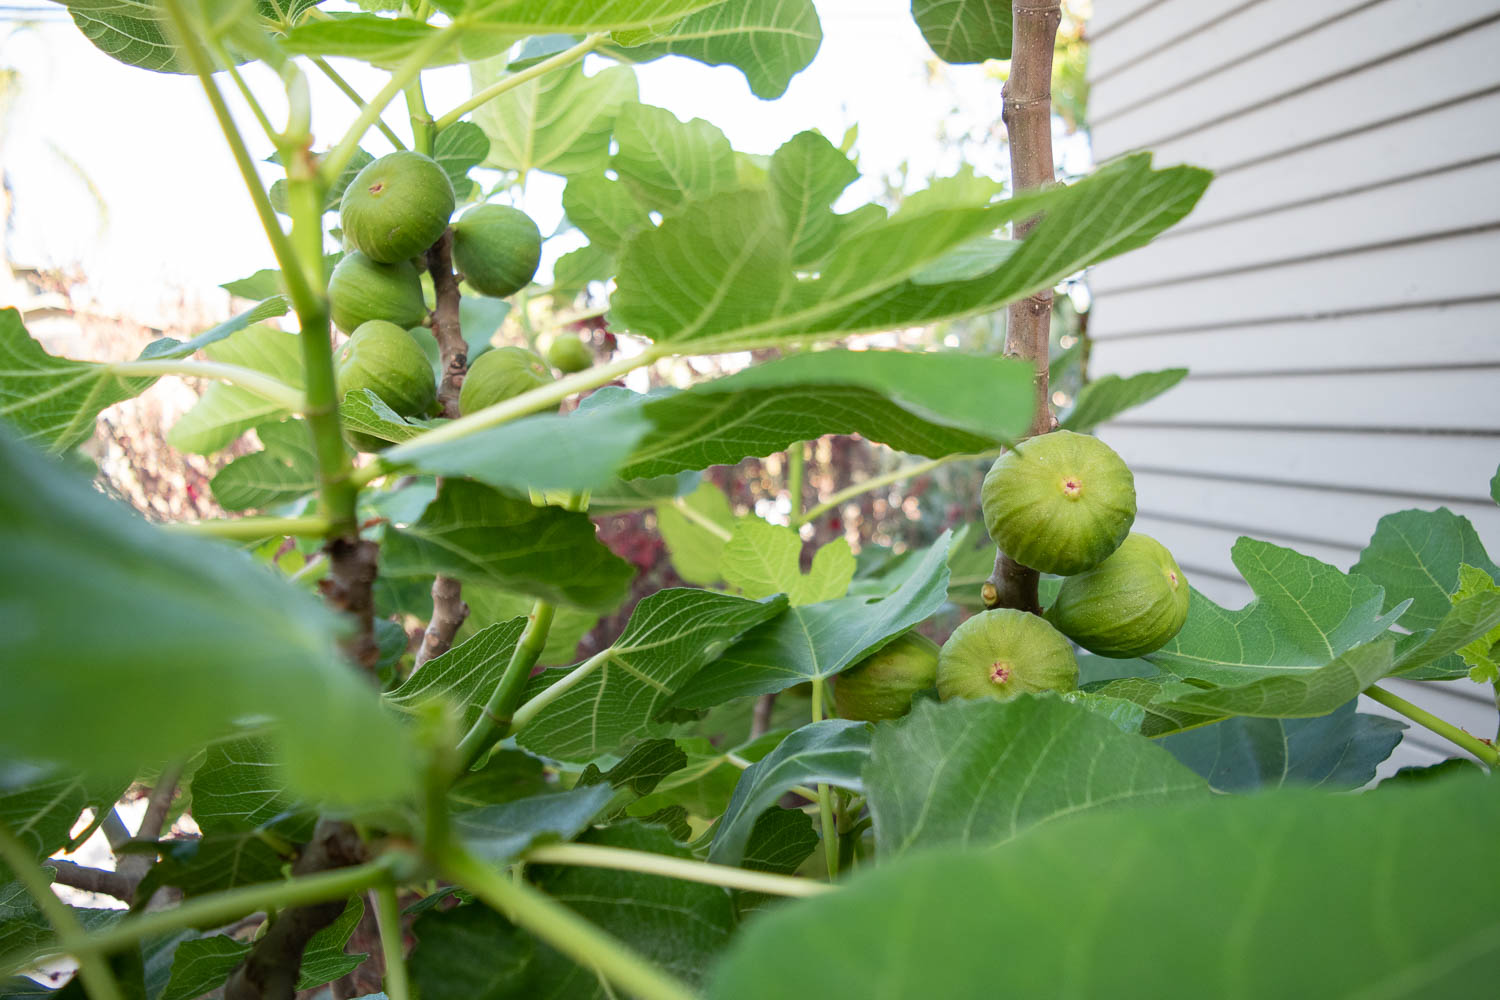 Brown Turkey Fig Tree - We planted this fella for the fruit - I simply adore figs. But it turns out the leaves are also amazing. I make ice cream using the leaves, so it turns out the whole tree is edible! The only issue we have is Sheryl, our backyard opossum, tends to eat the figs before we can.